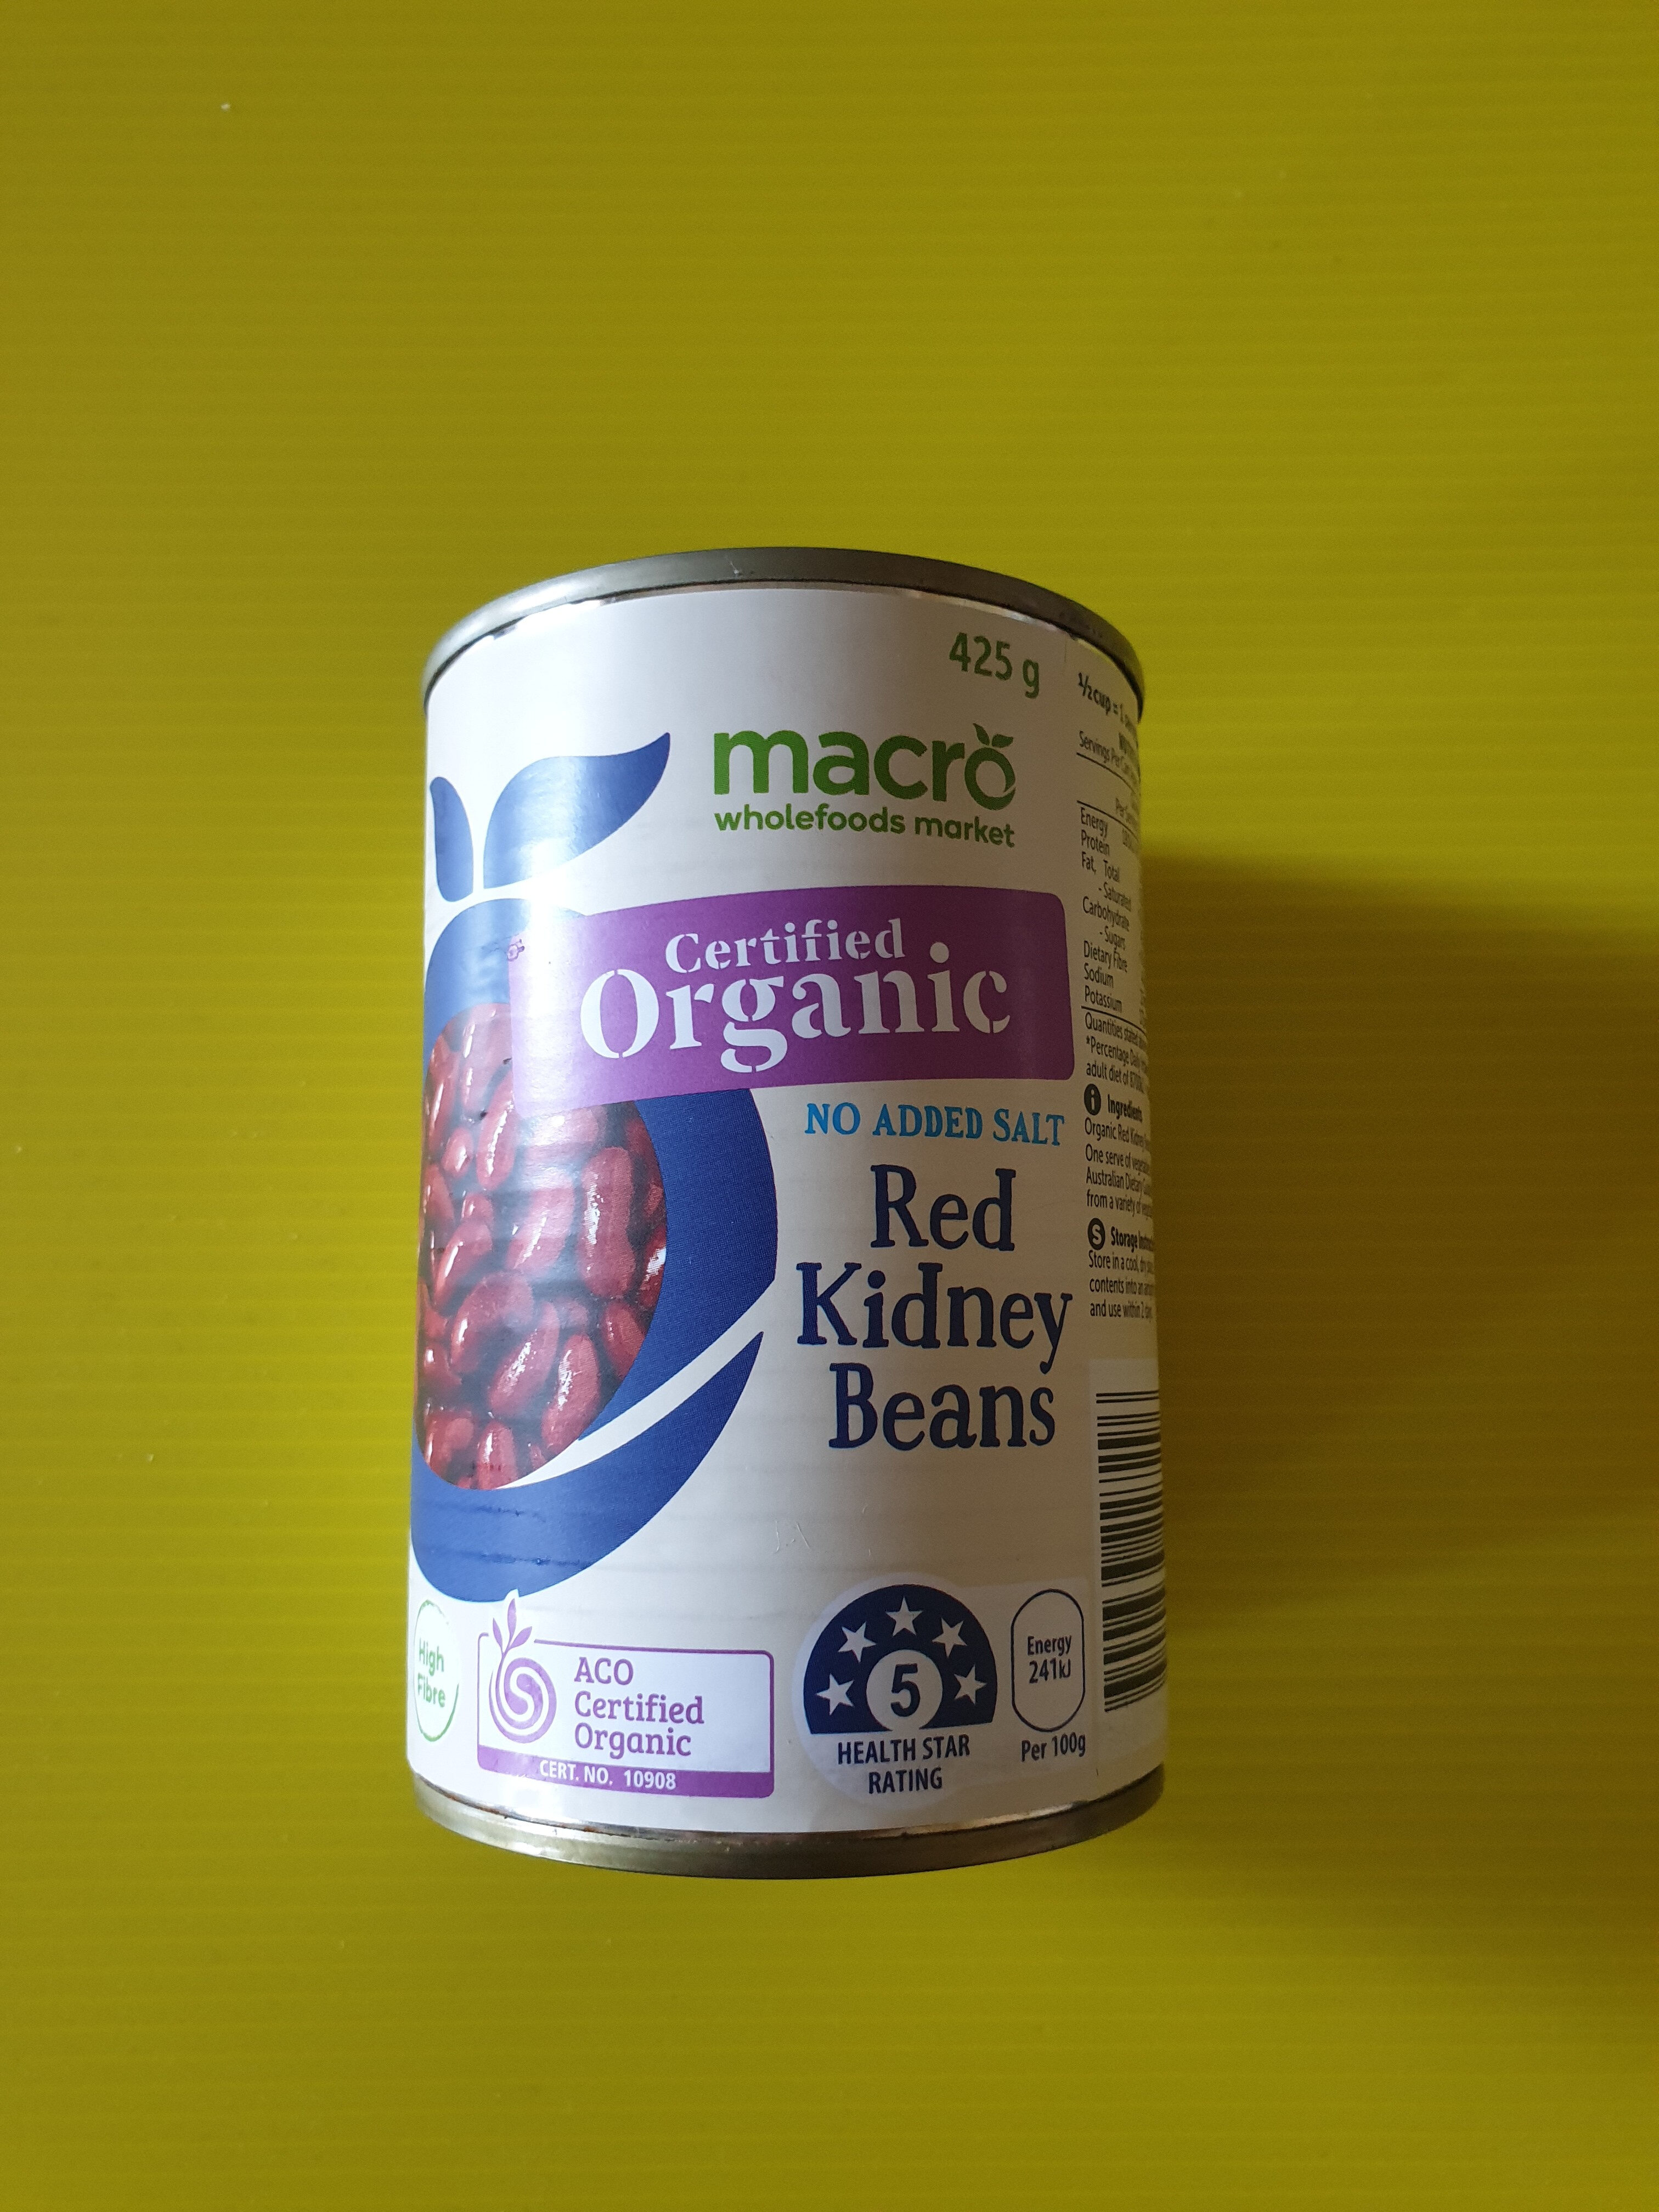 Red Kidney Beans (Organic) - Product - en